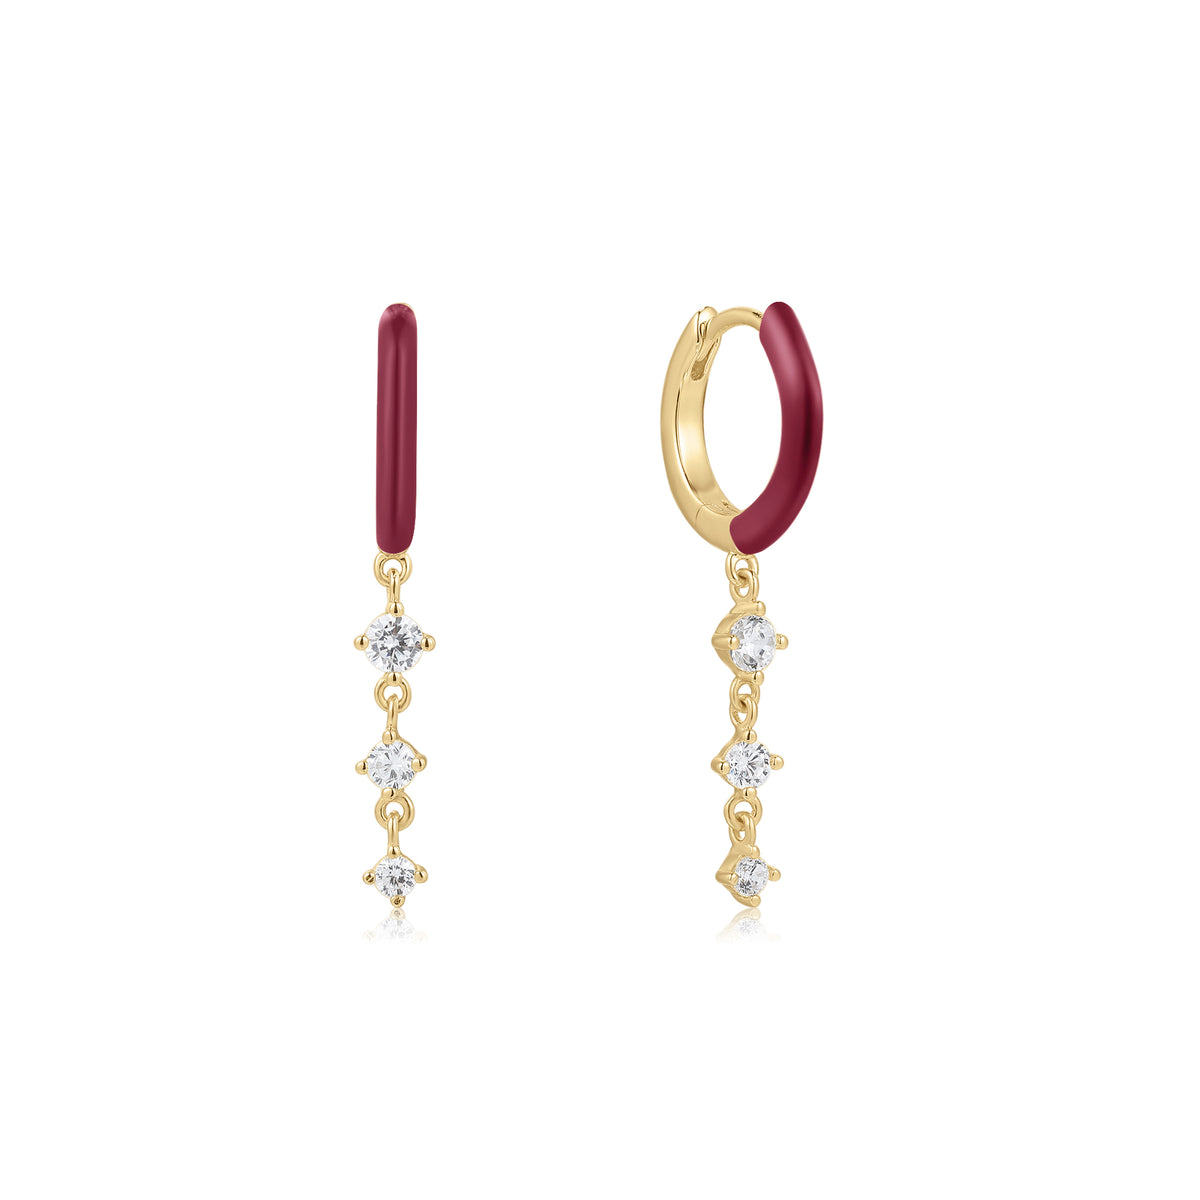 Cardea | Chanterelle Earrings | 925 Silver | Dark Red Enamel & White CZ | 14K Gold Plated